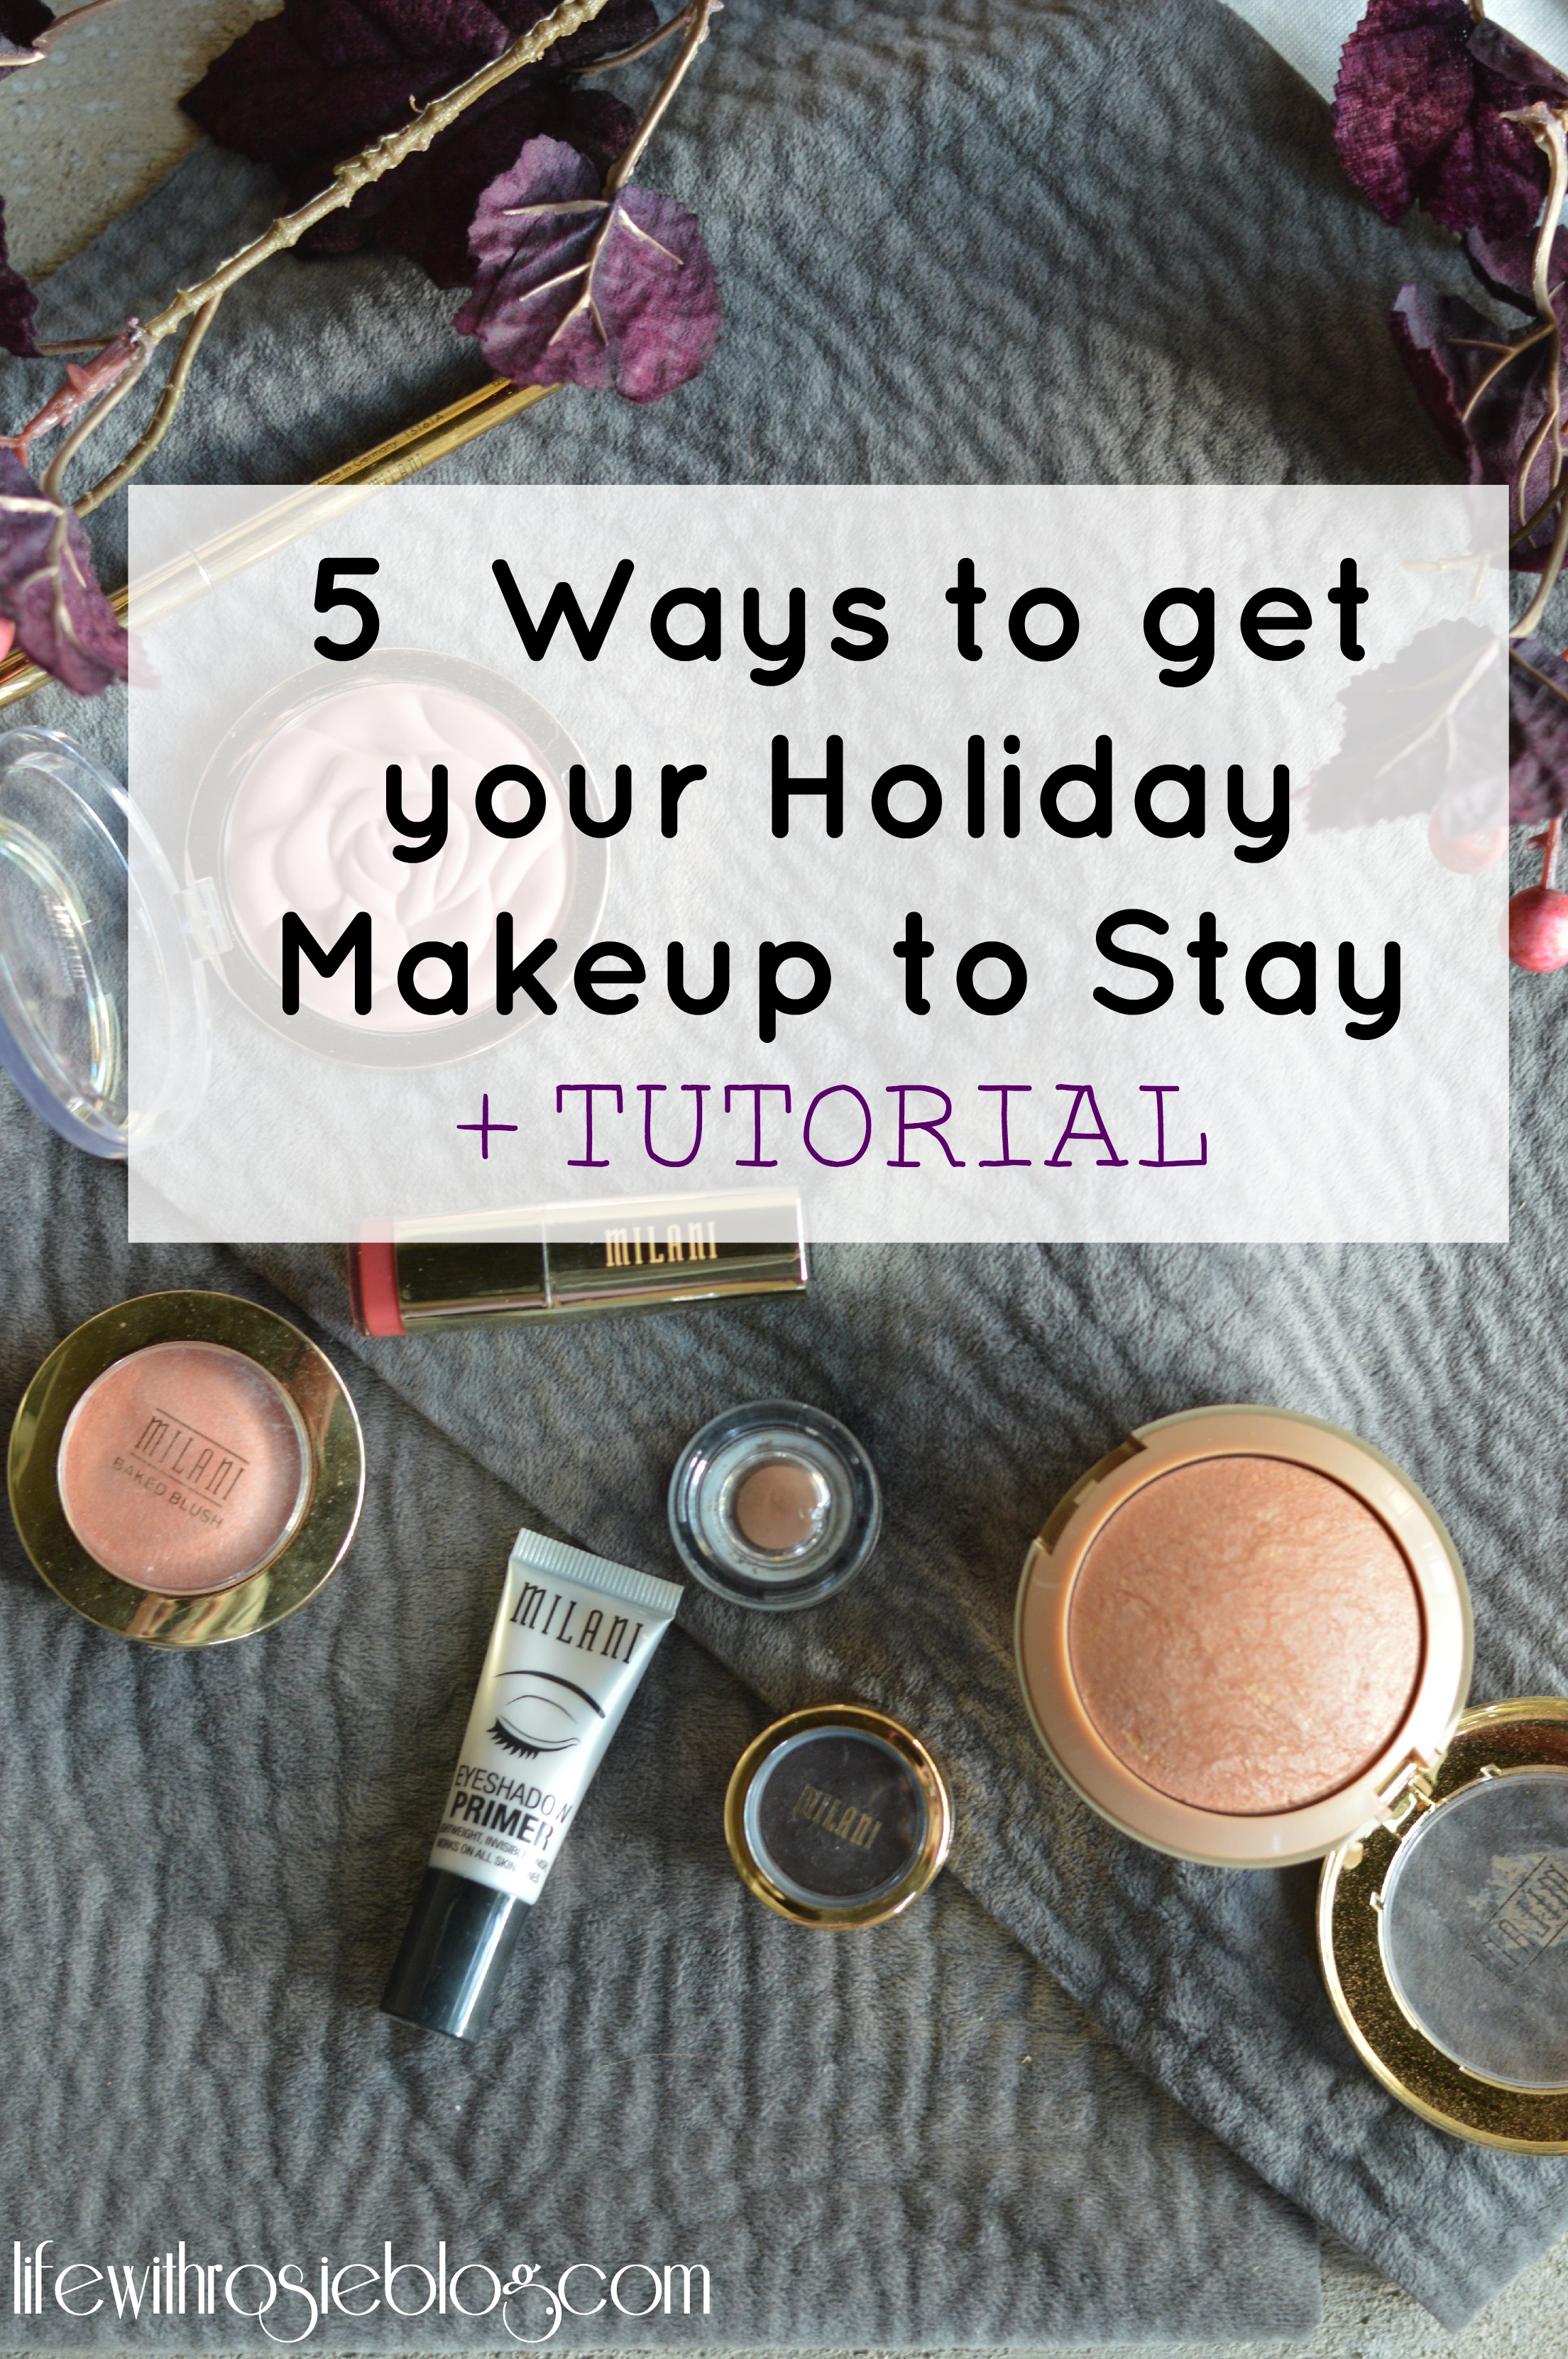 5 Ways to get your Holiday Makeup to Stay + A Holiday Makeup Tutorial [ad] #lookbymilani // Life with Rosie